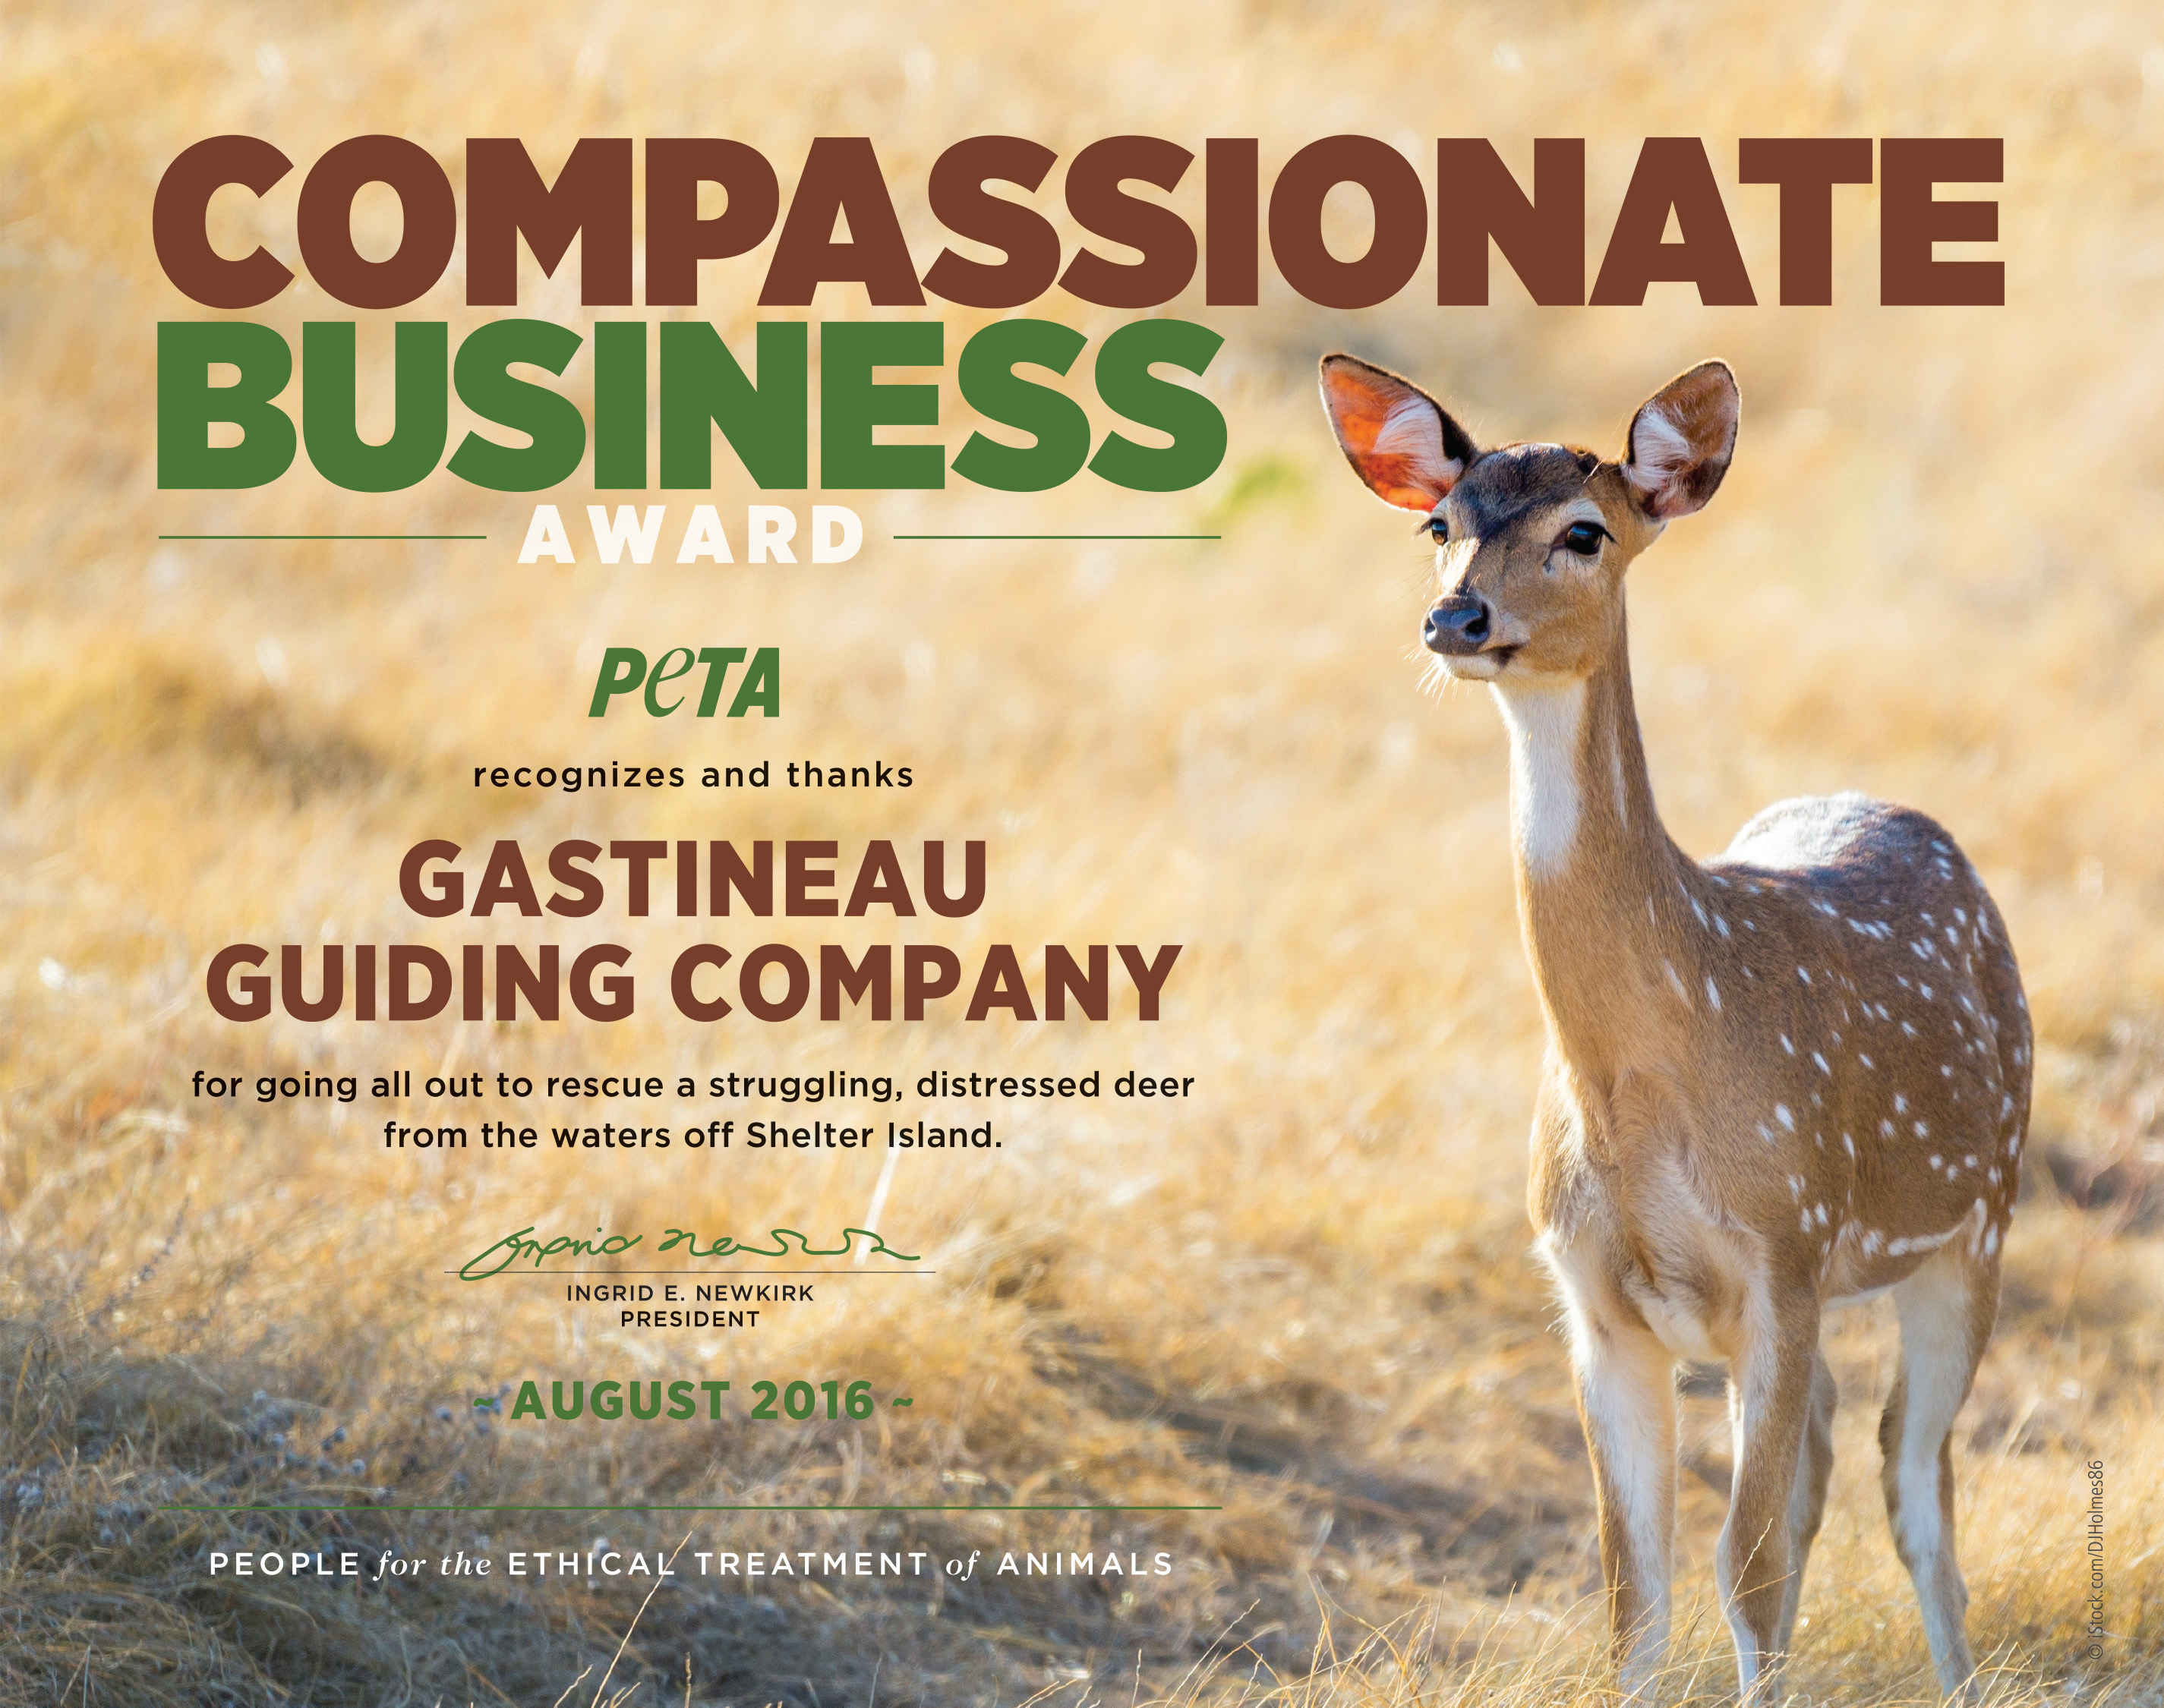 A copy of the Compassionate Business Award that PETA will send the Juneau Gastineau Guiding Co. (Courtesy of People for the Ethical Treatment of Animals)